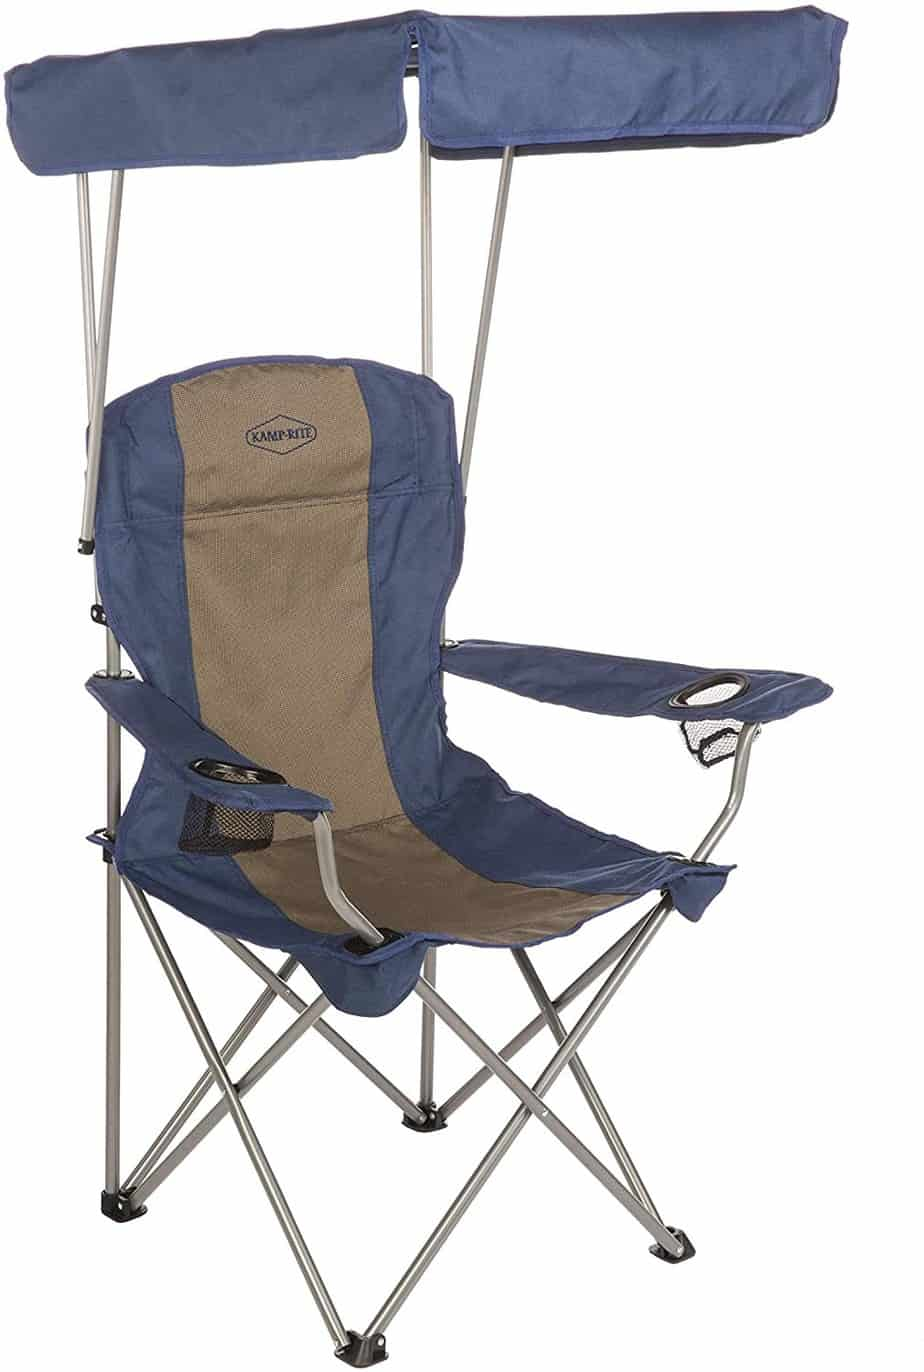 8. Kamp-Rite Chair with Shade Canopy